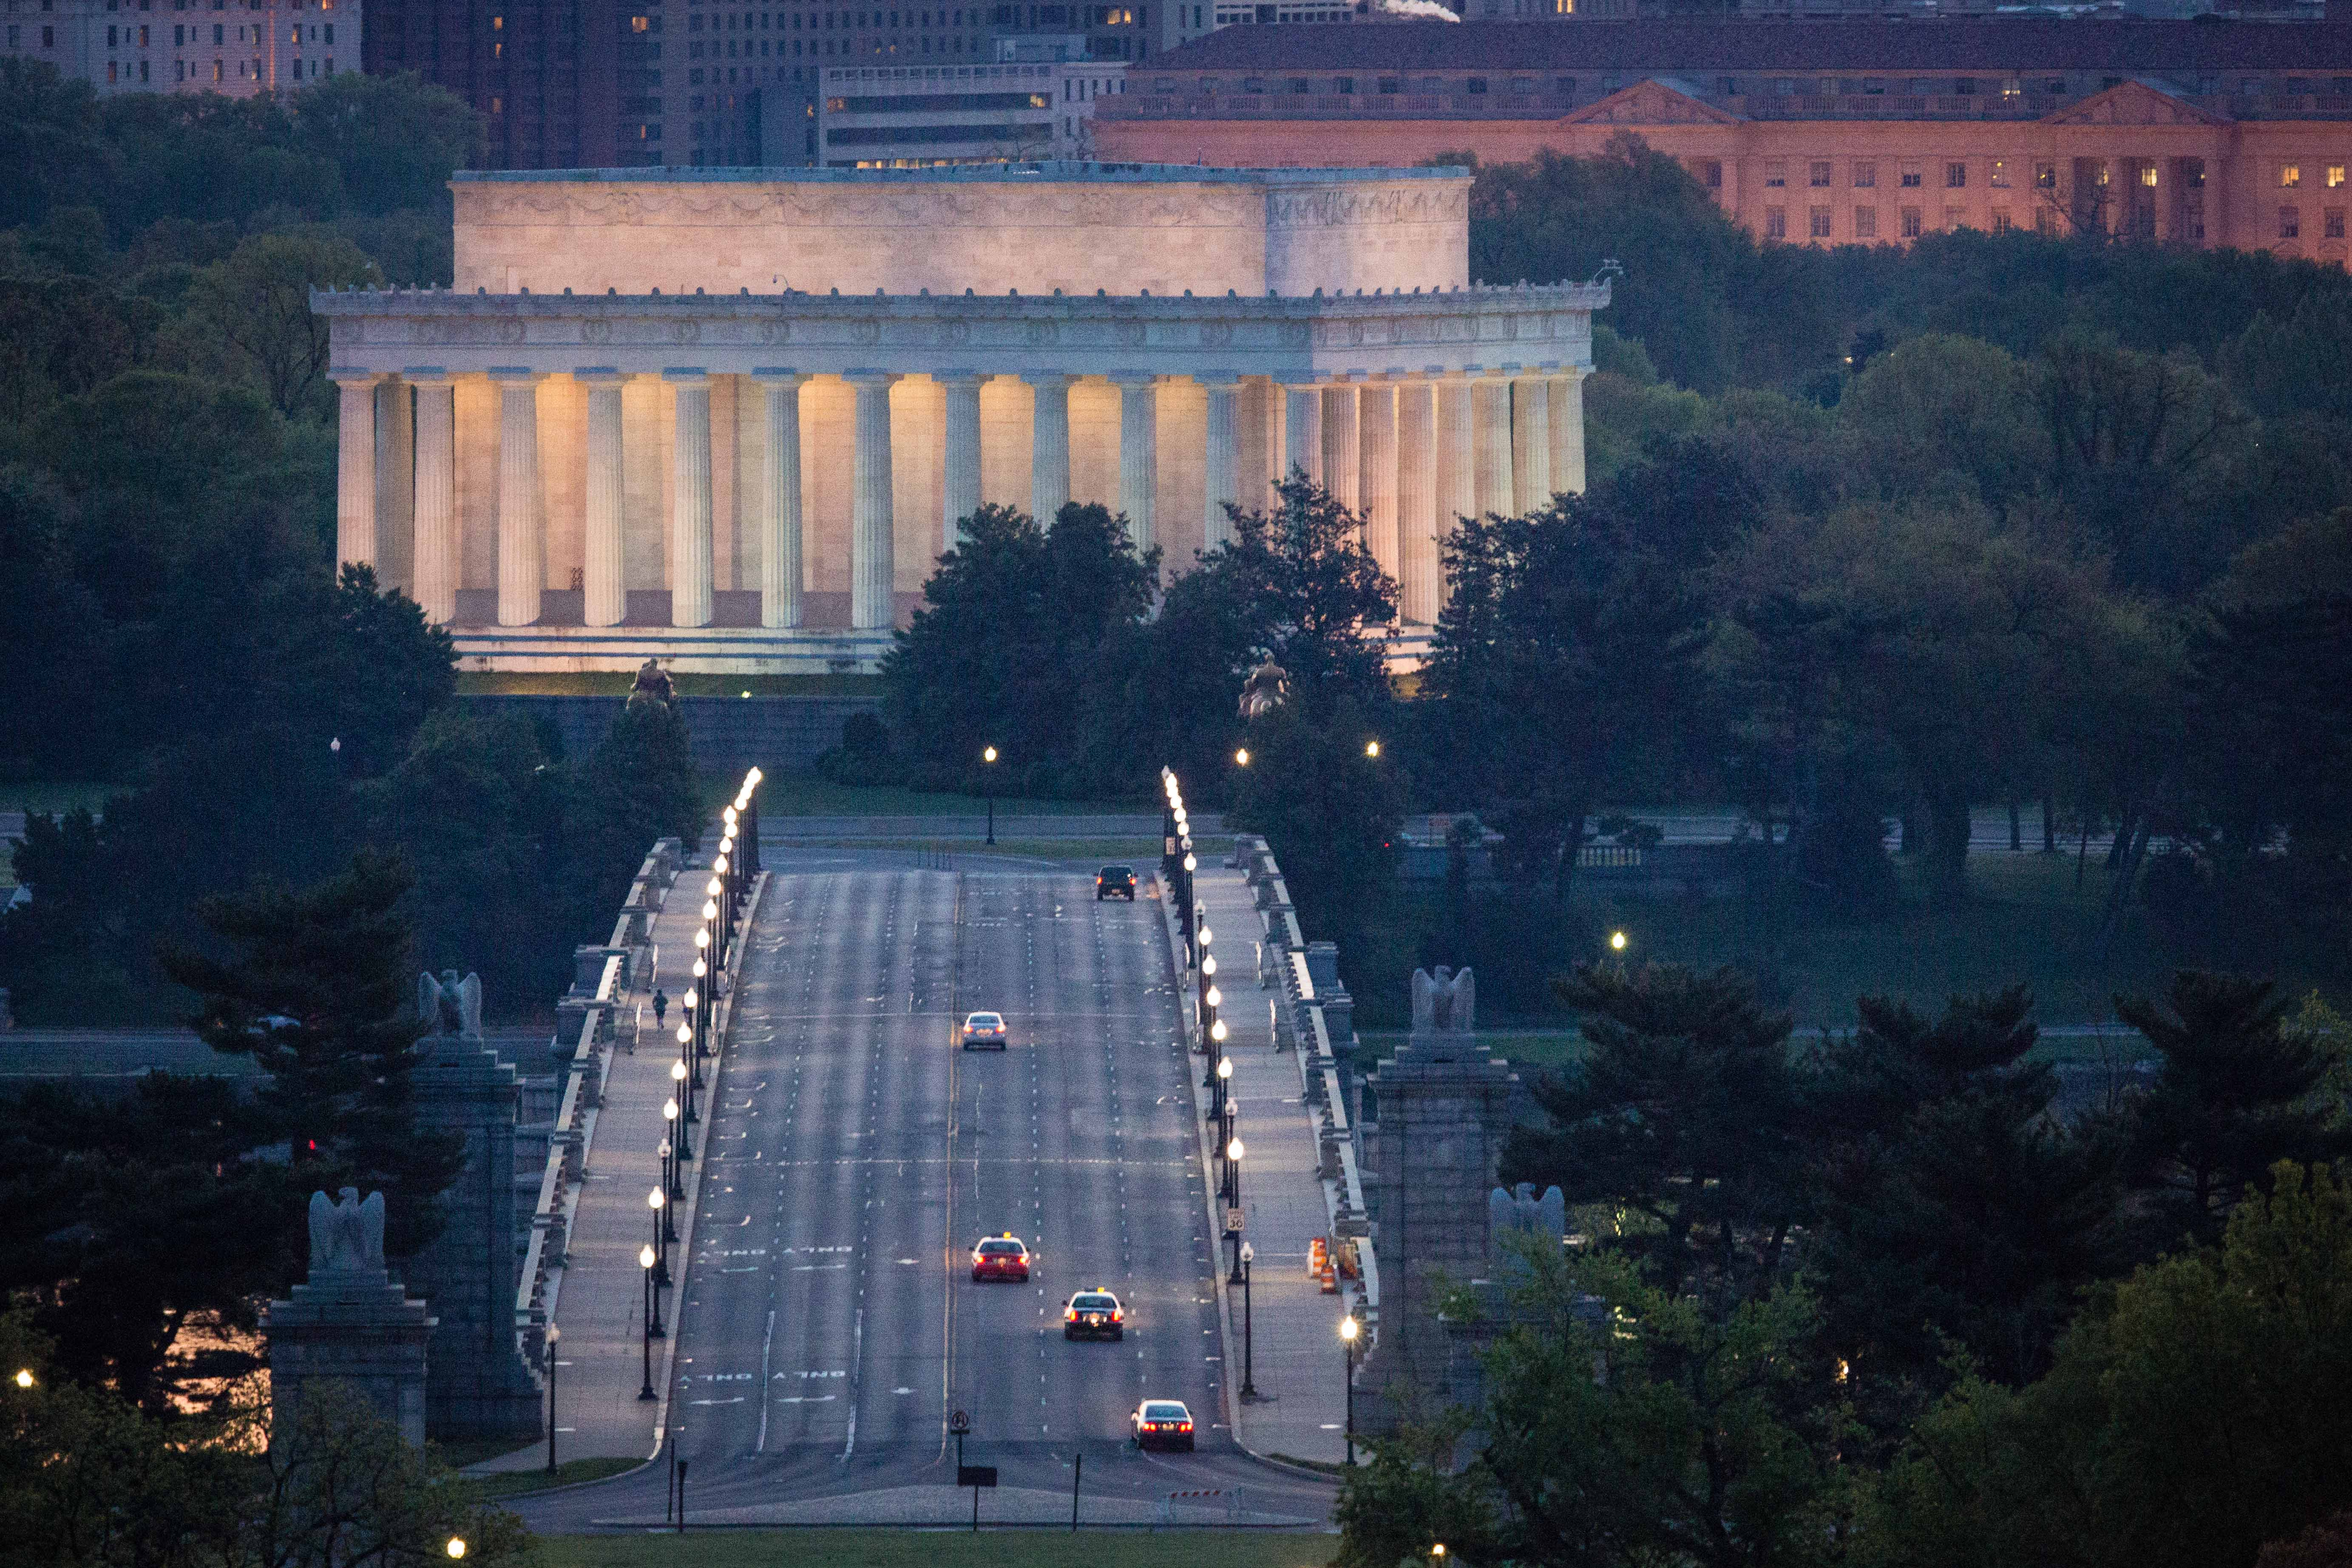 Plan set for badly needed Arlington Memorial Bridge repairs